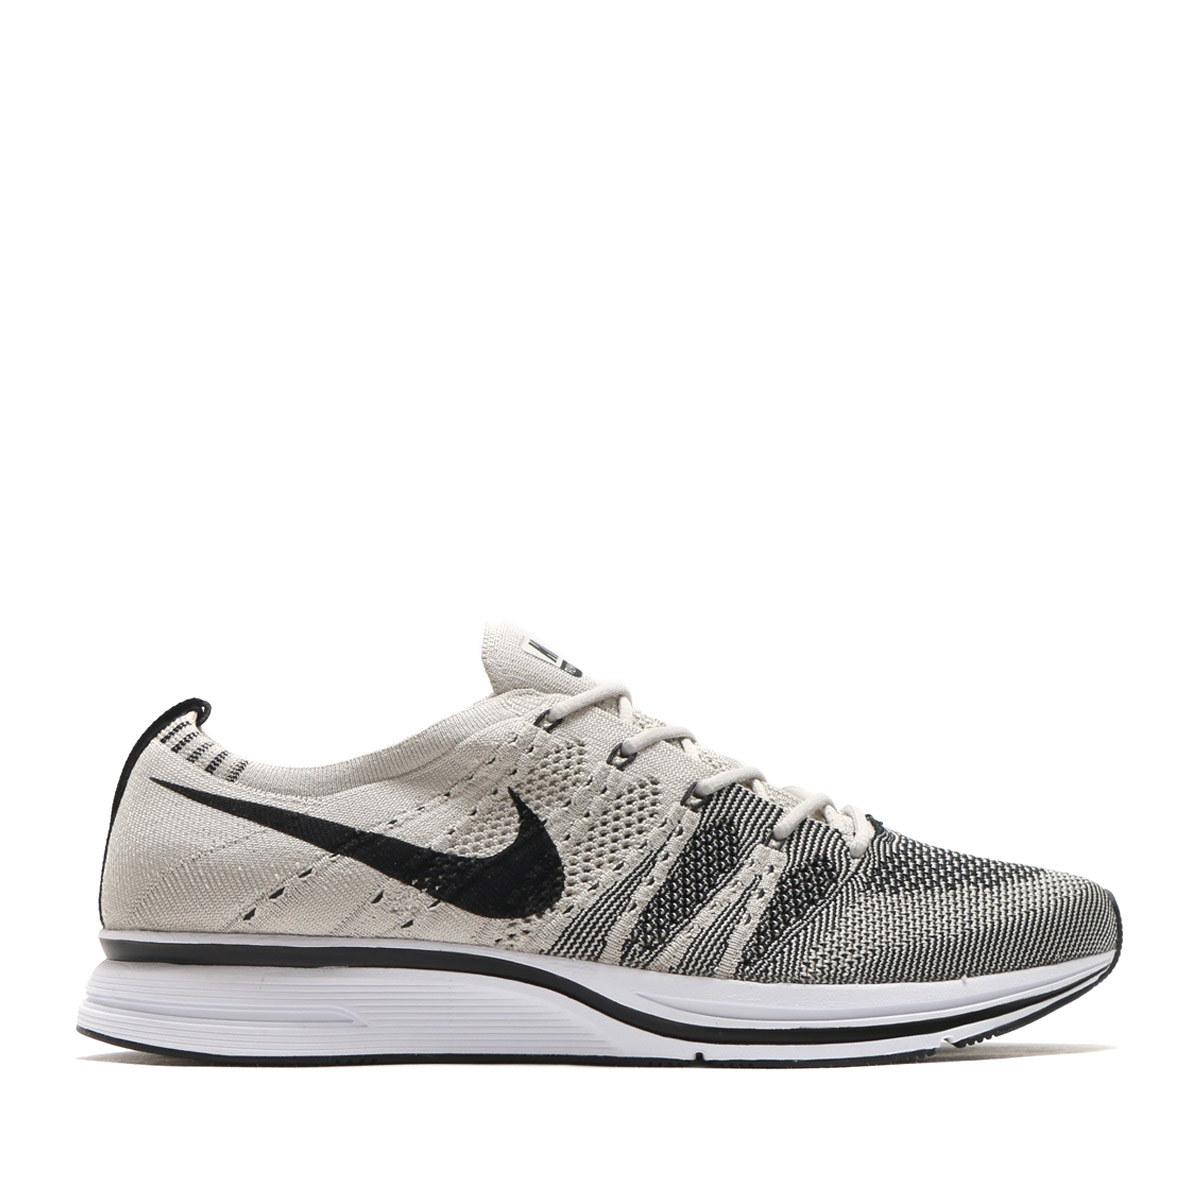 f80cf772d04cb NIKE FLYKNIT TRAINER (Nike fried food knit trainer) (PALE GREY BLACK-WHITE)  17FA-S